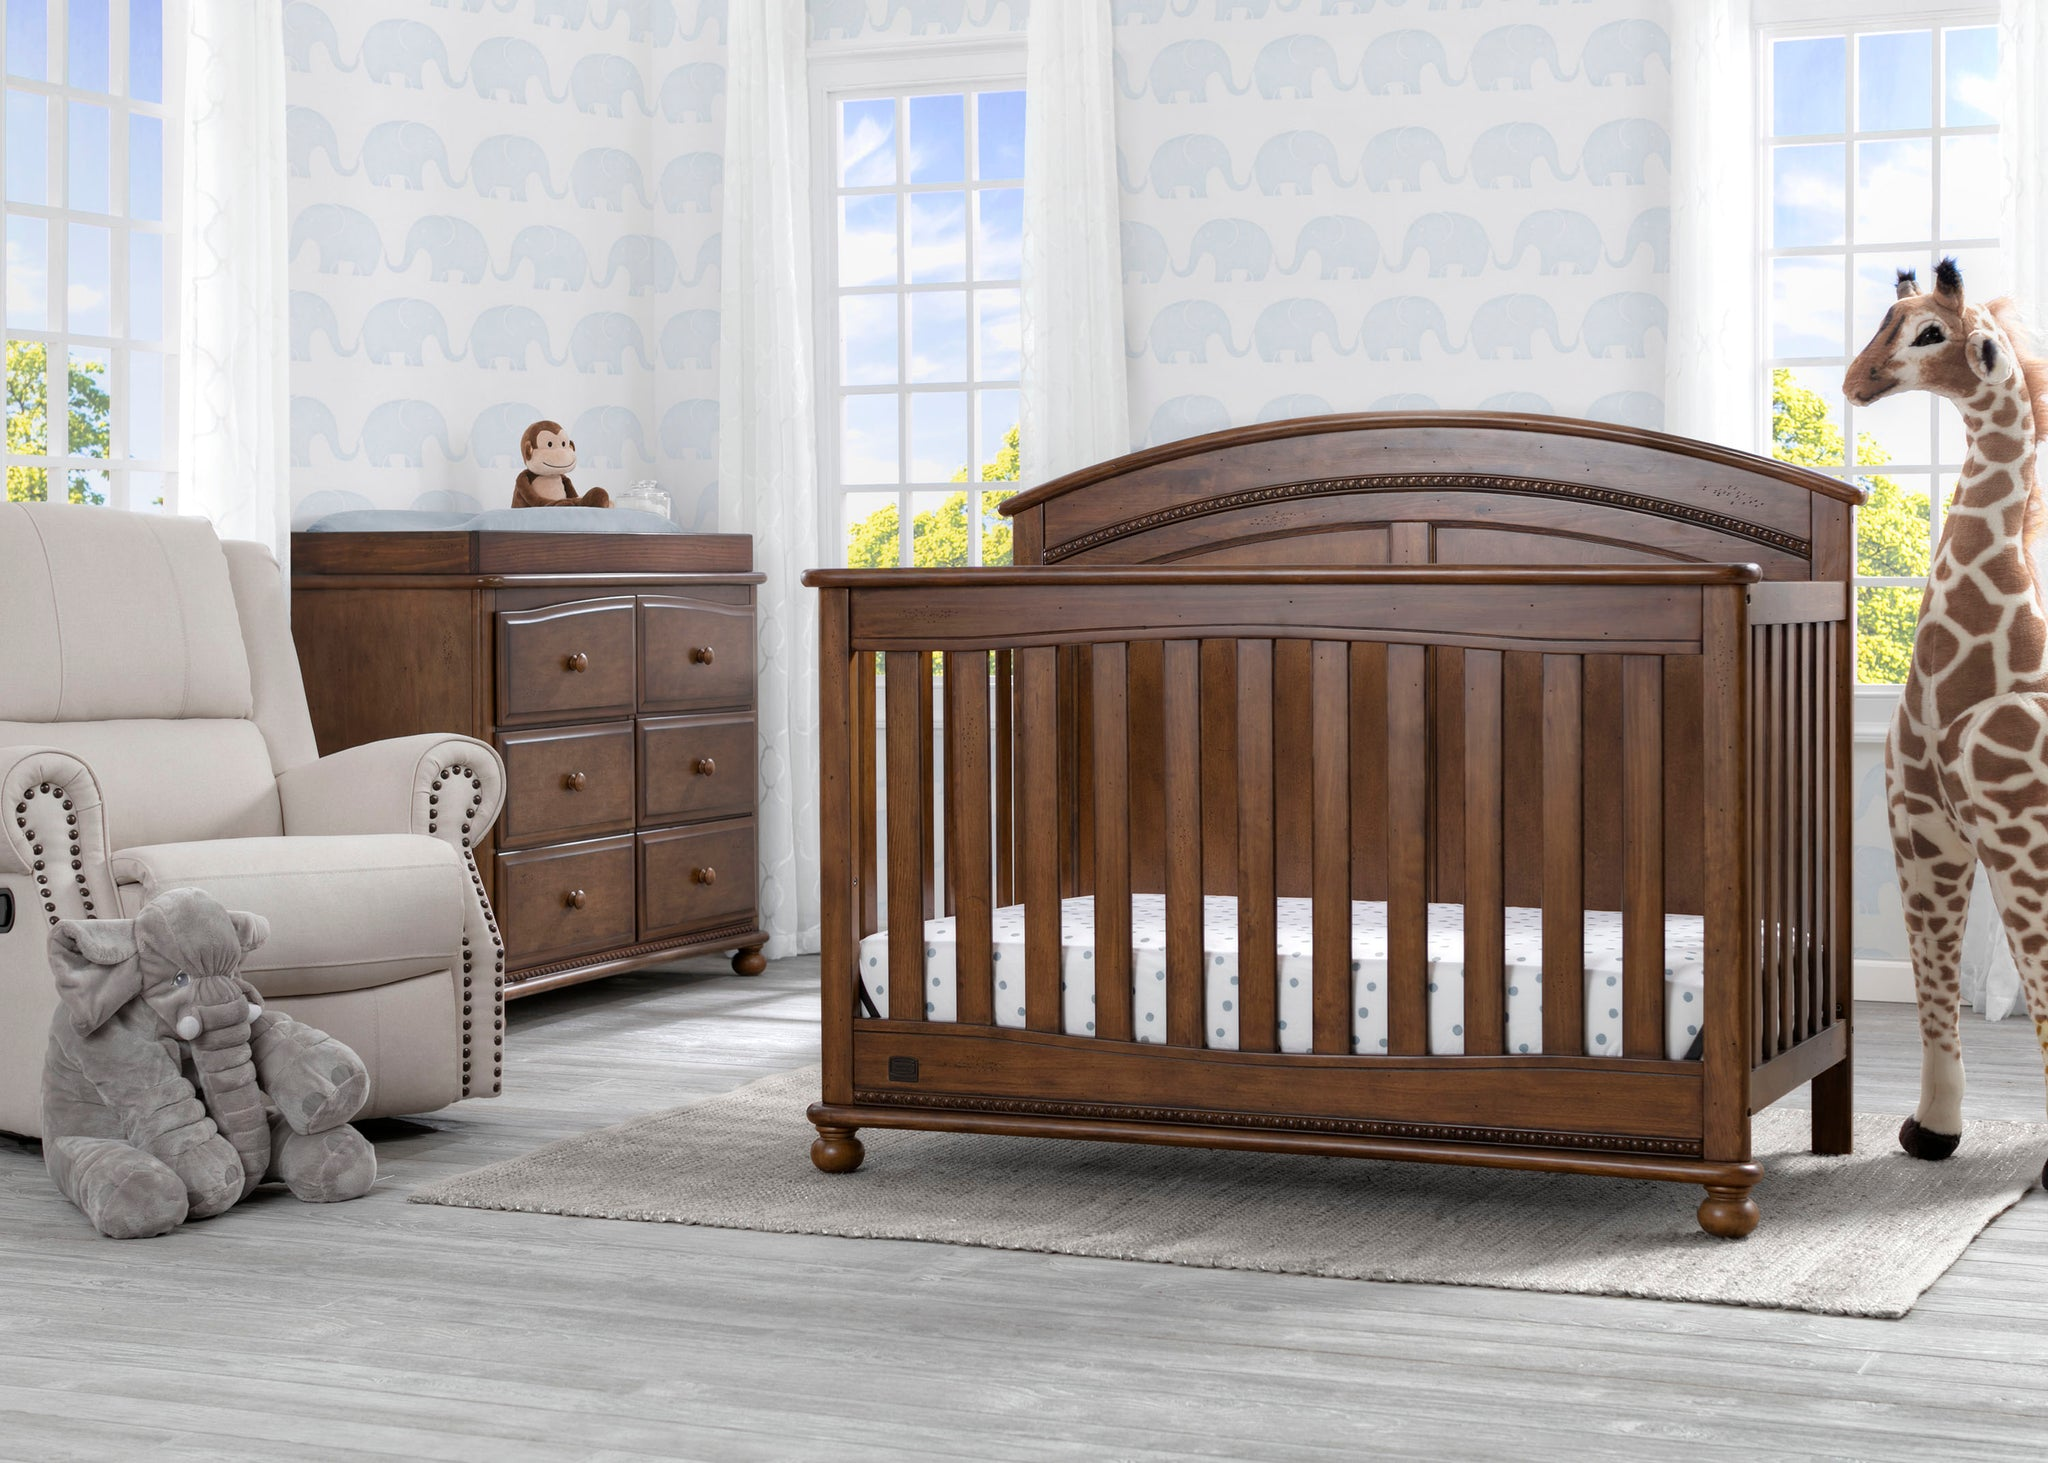 Simmons Kids Antique Chestnut (2100) Ainsworth 4-in-1 Convertible Crib (W337250), Room View, c1c